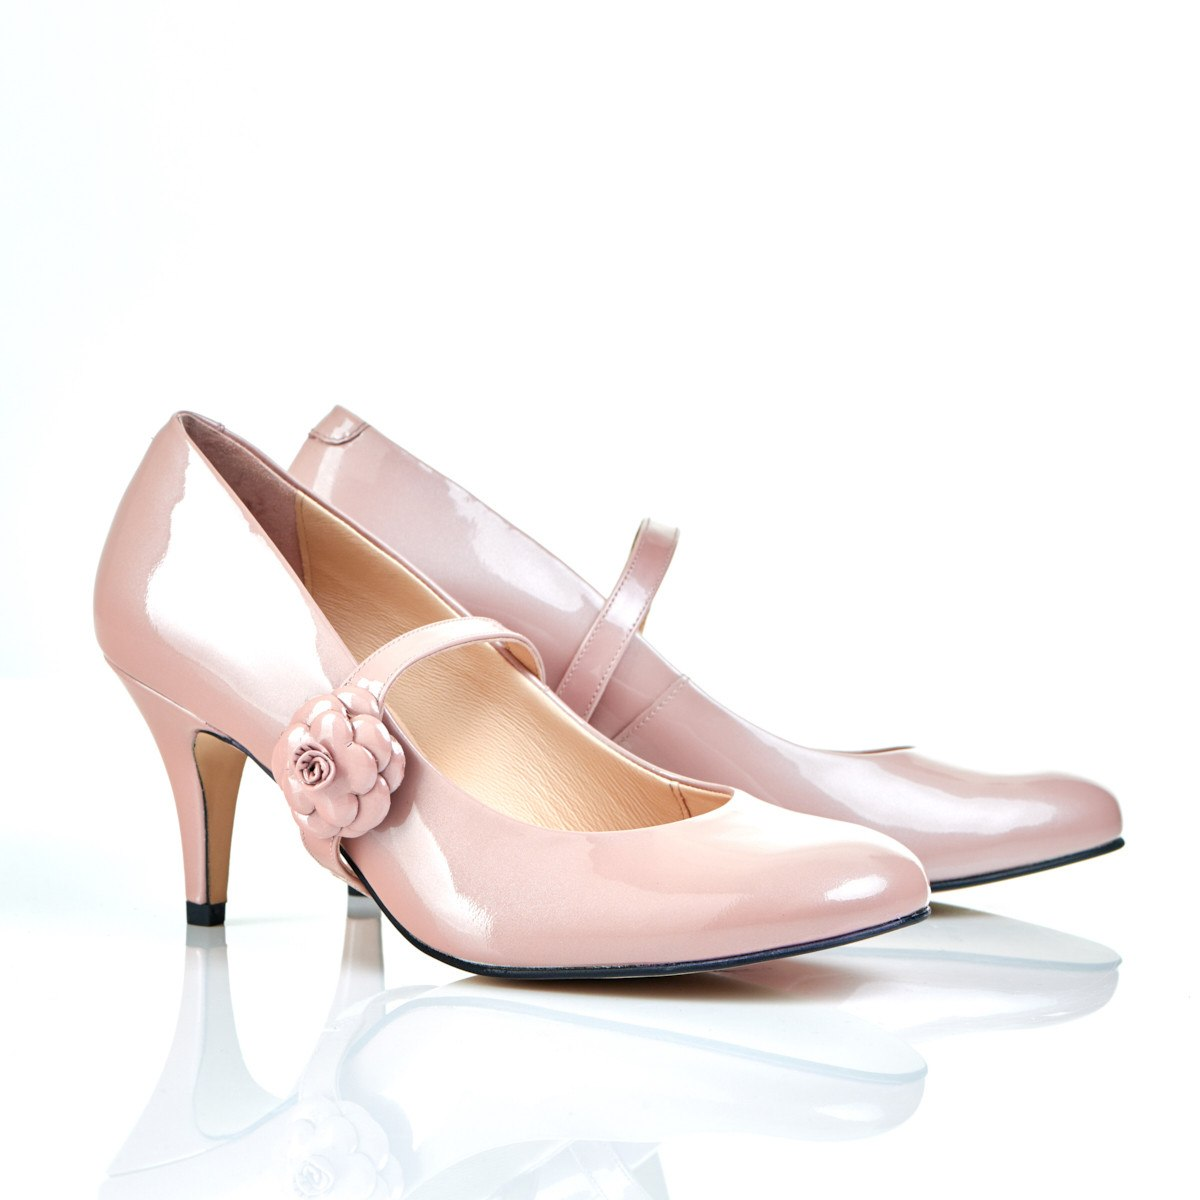 Don't Wait Up in Blush - Shoes by Shaherazad